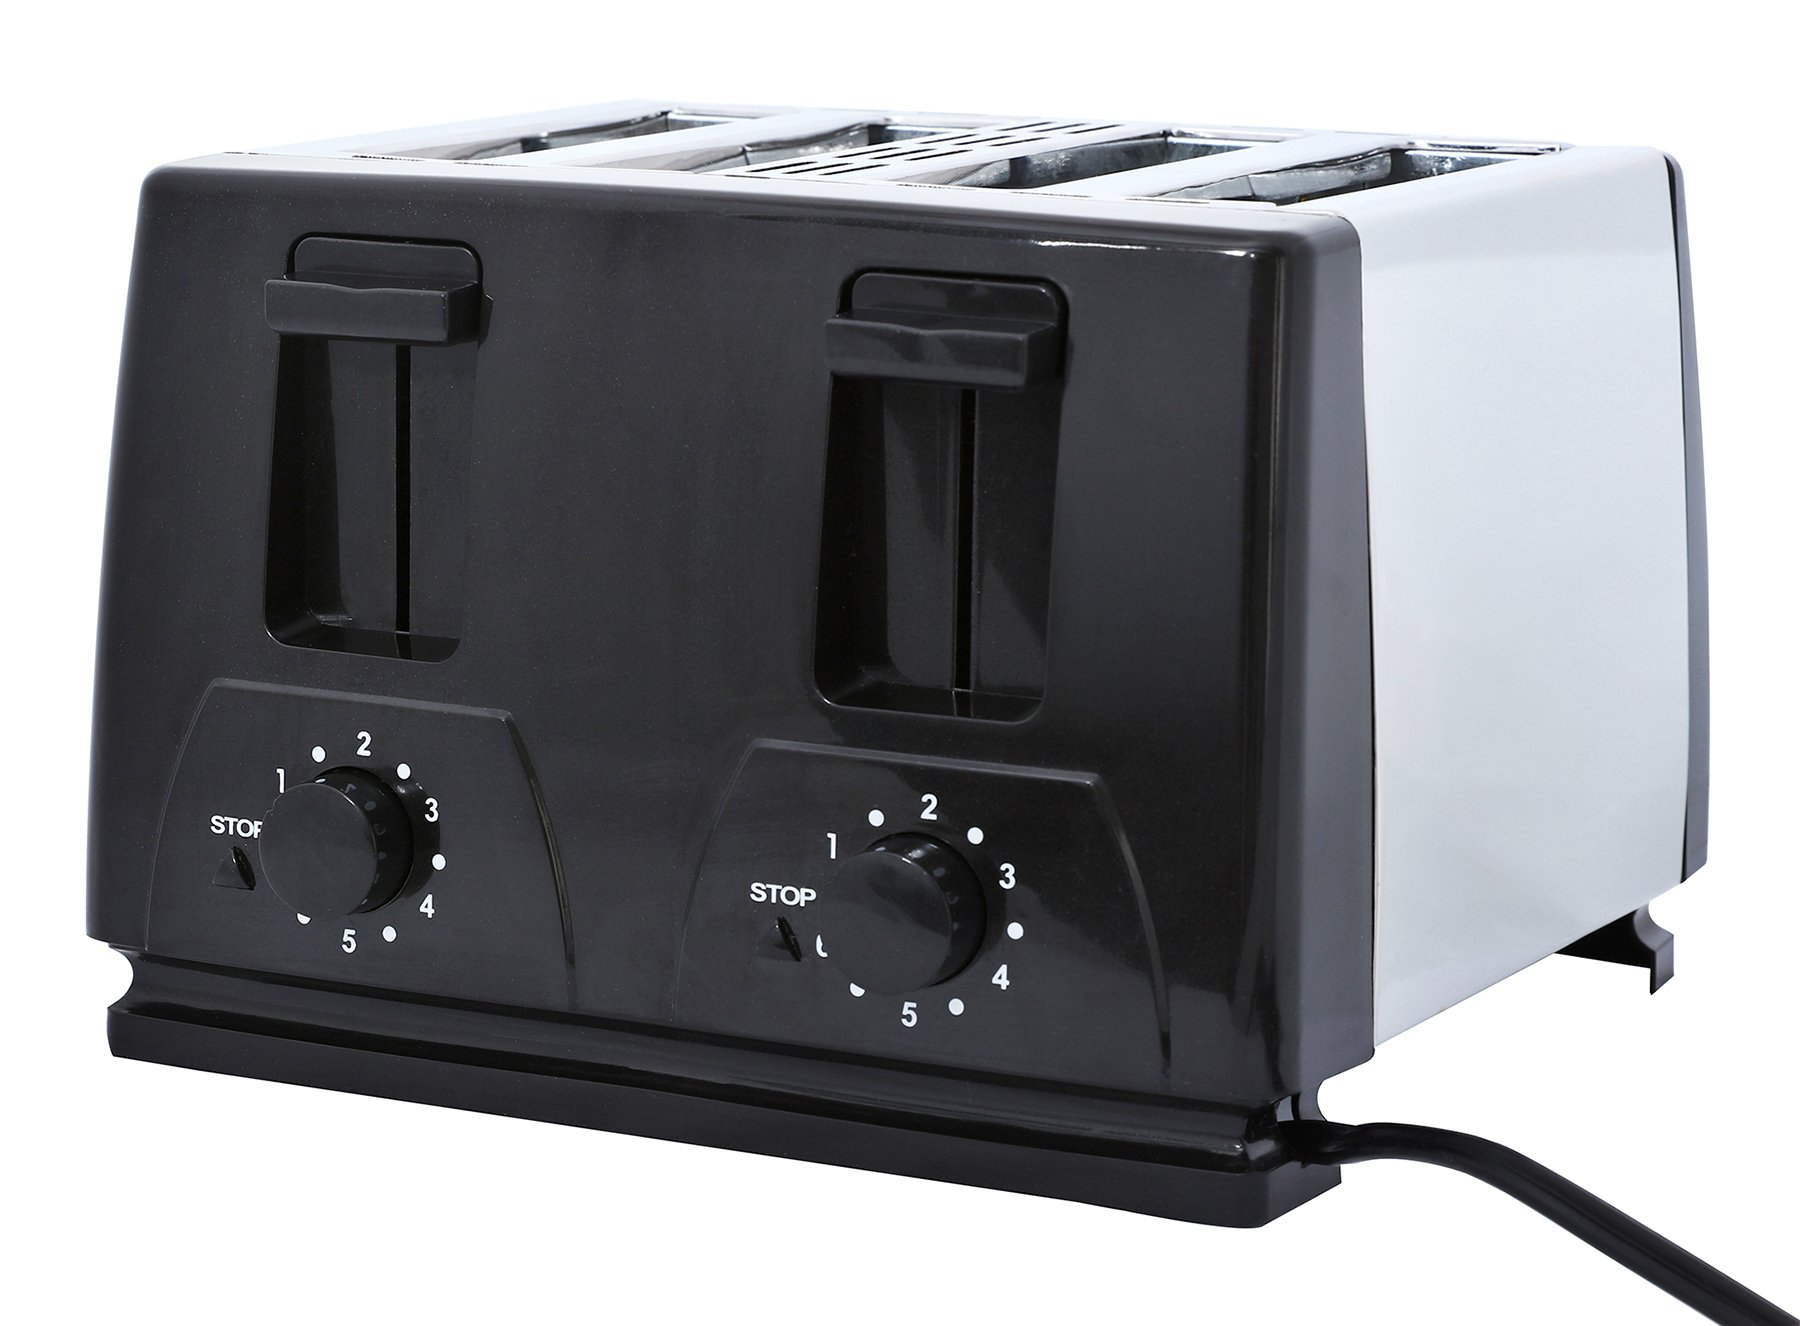 Brentwood TS-284 4 Slice Toaster, Black